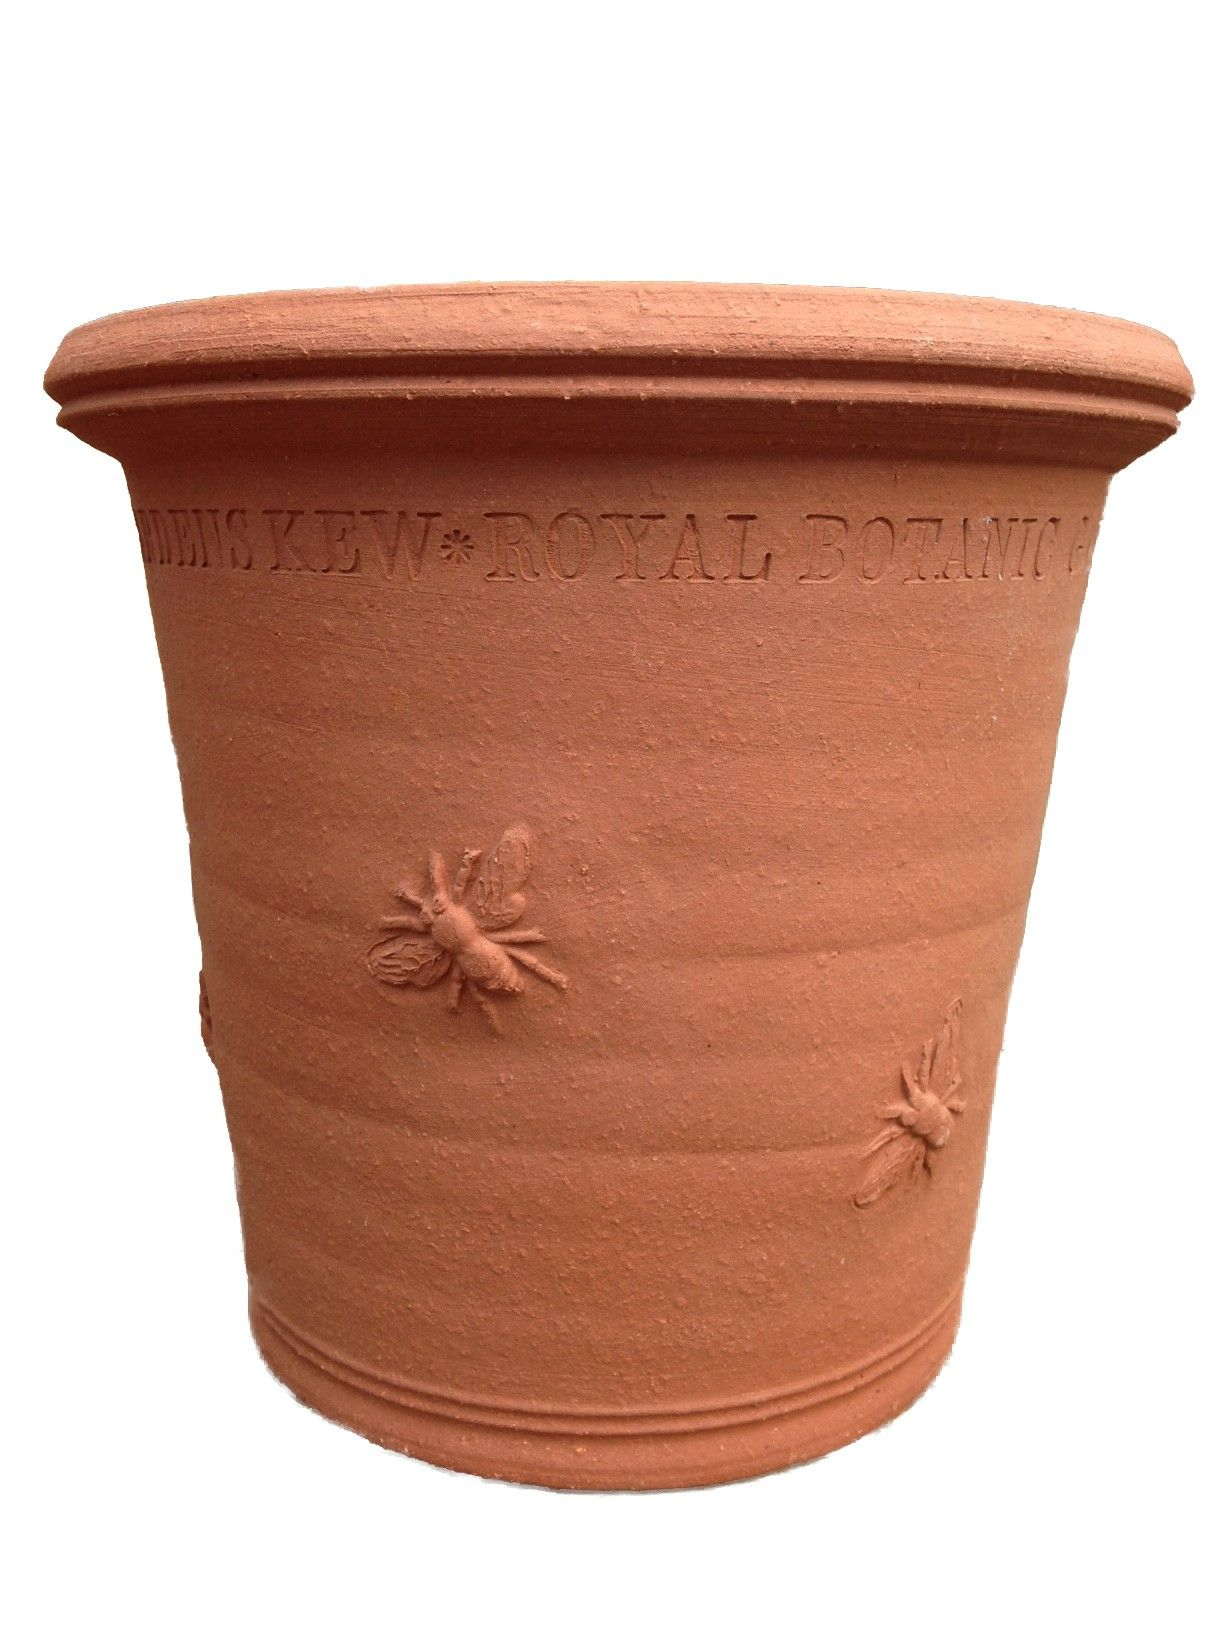 This terracotta pot was specifically made for bee and kew lovers this terracotta pot was specifically made for bee and kew lovers workwithnaturefo